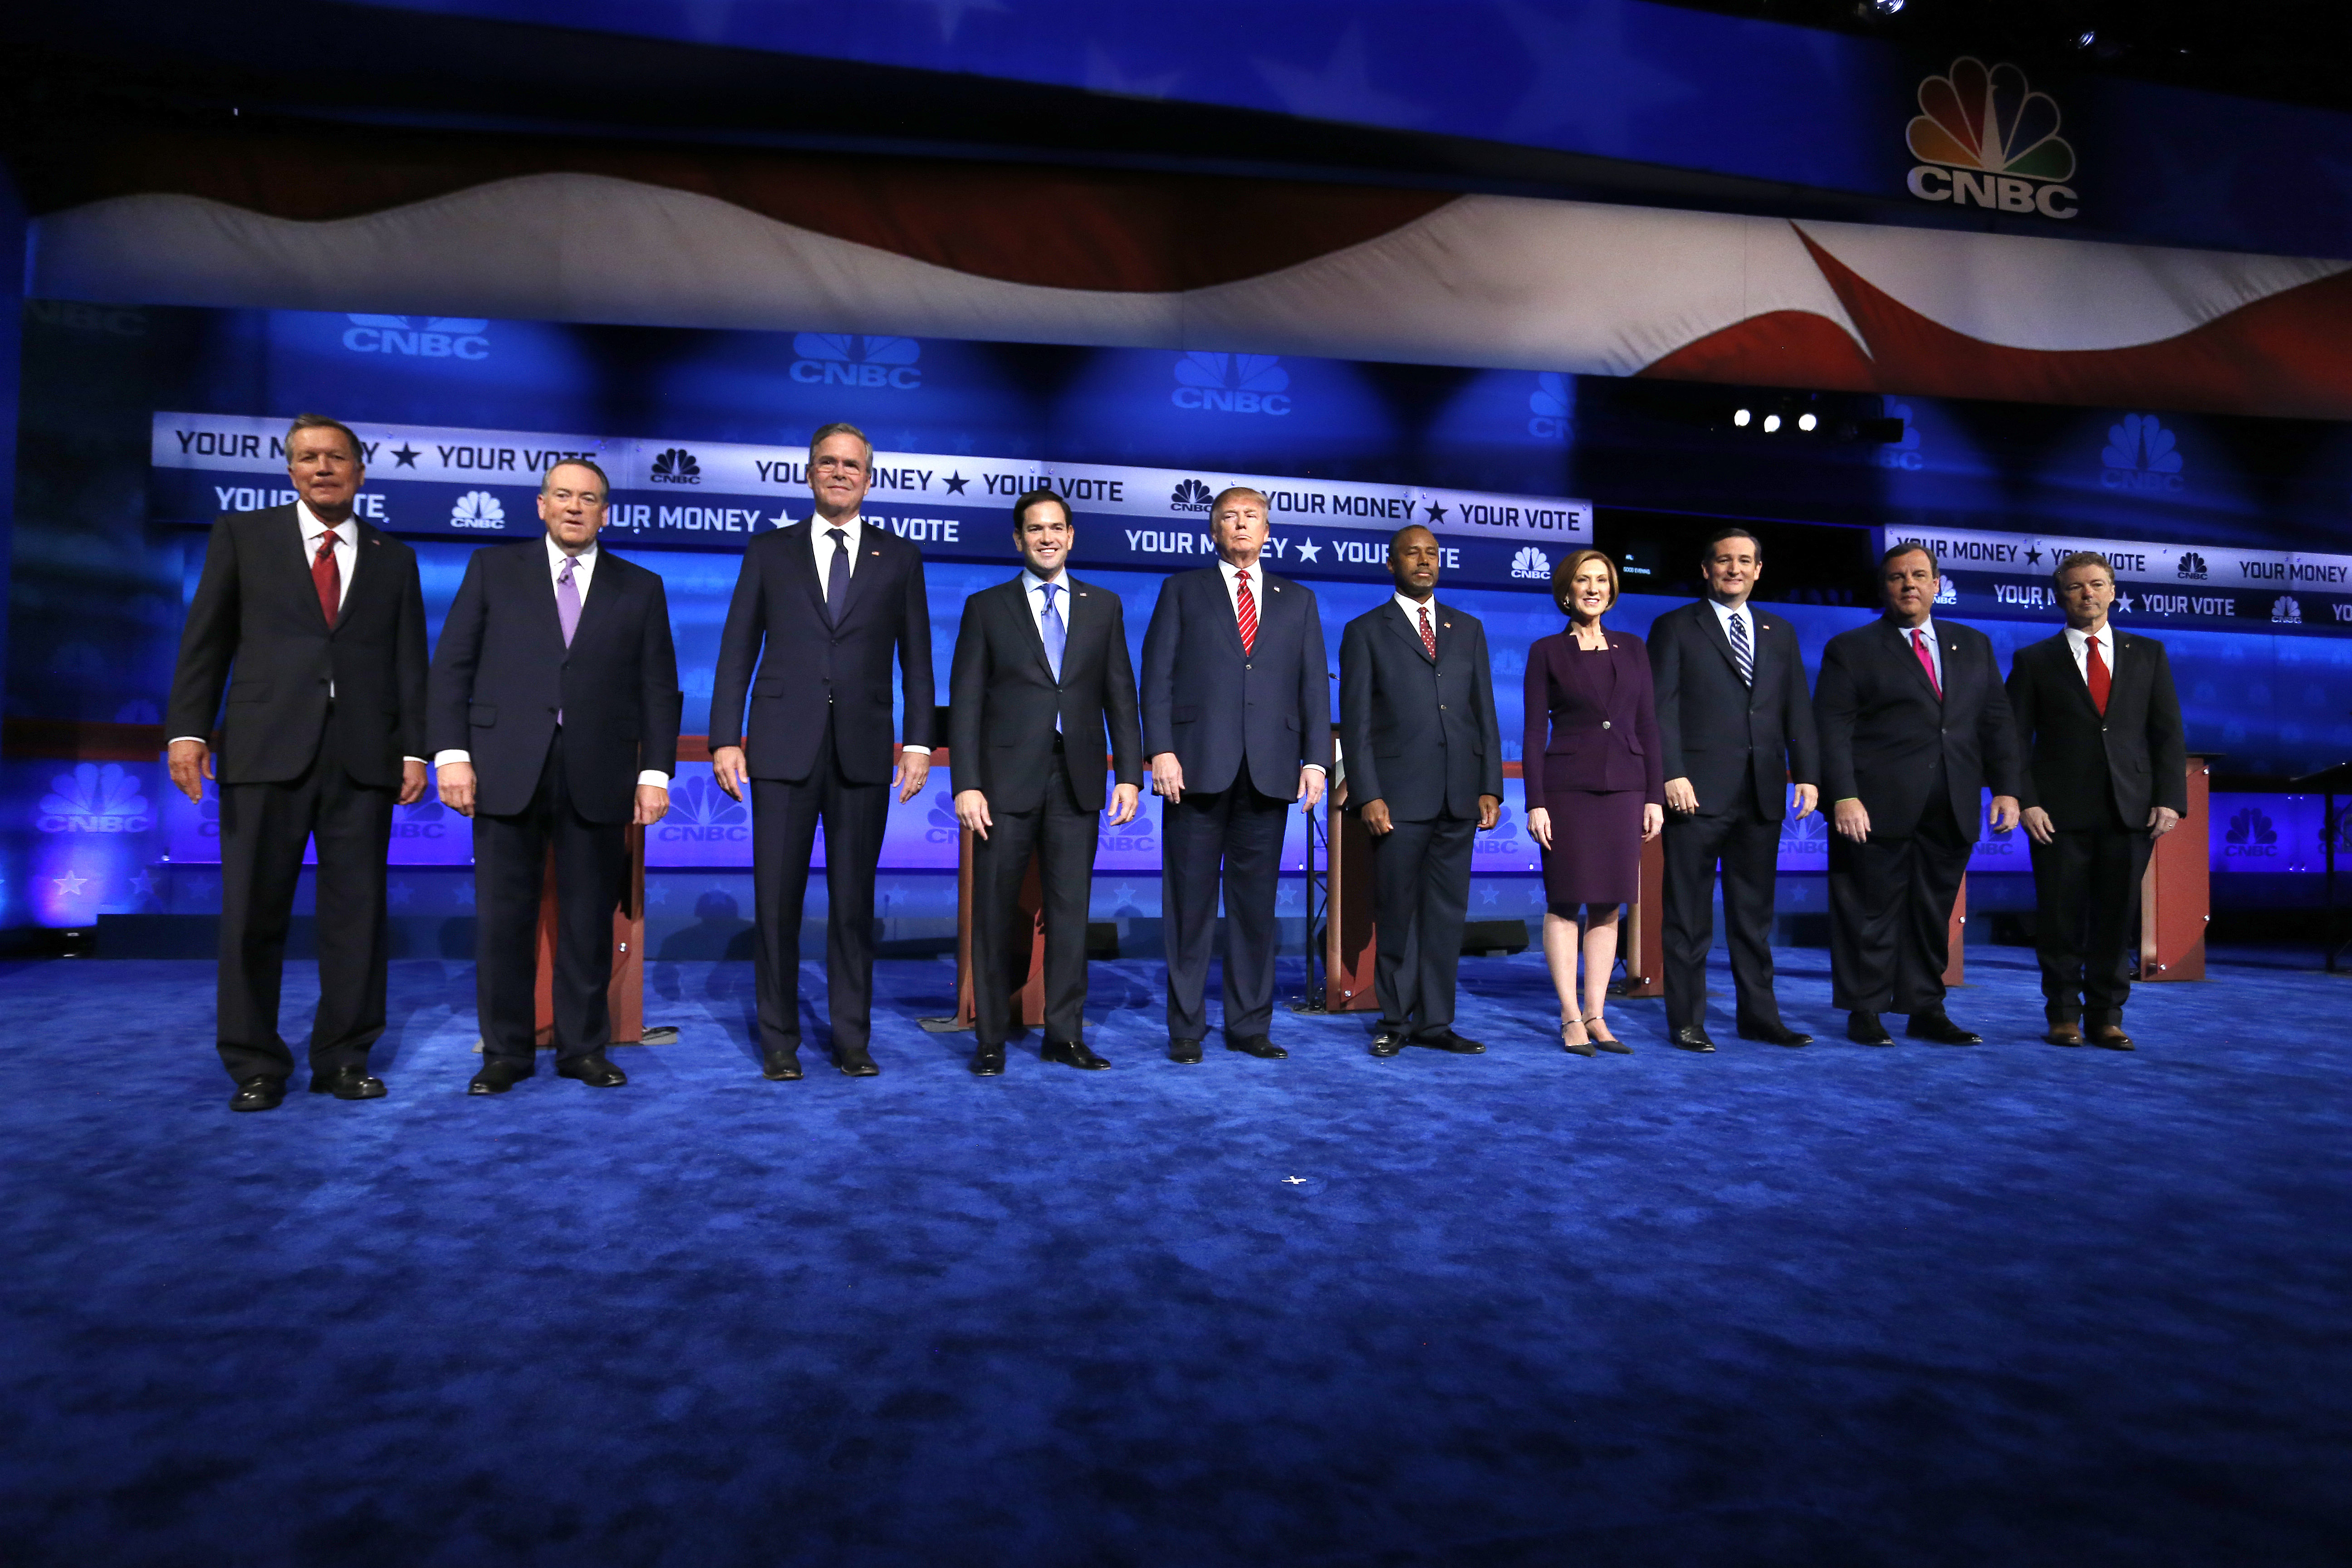 <p>Republican presidential candidates, from left, John Kasich, Mike Huckabee, Jeb Bush, Marco Rubio, Donald Trump, Ben Carson, Carly Fiorina, Ted Cruz, Chris Christie, and Rand Paul take the stage during the CNBC Republican presidential debate at the University of Colorado, Wednesday, Oct. 28, 2015, in Boulder, Colo.</p>